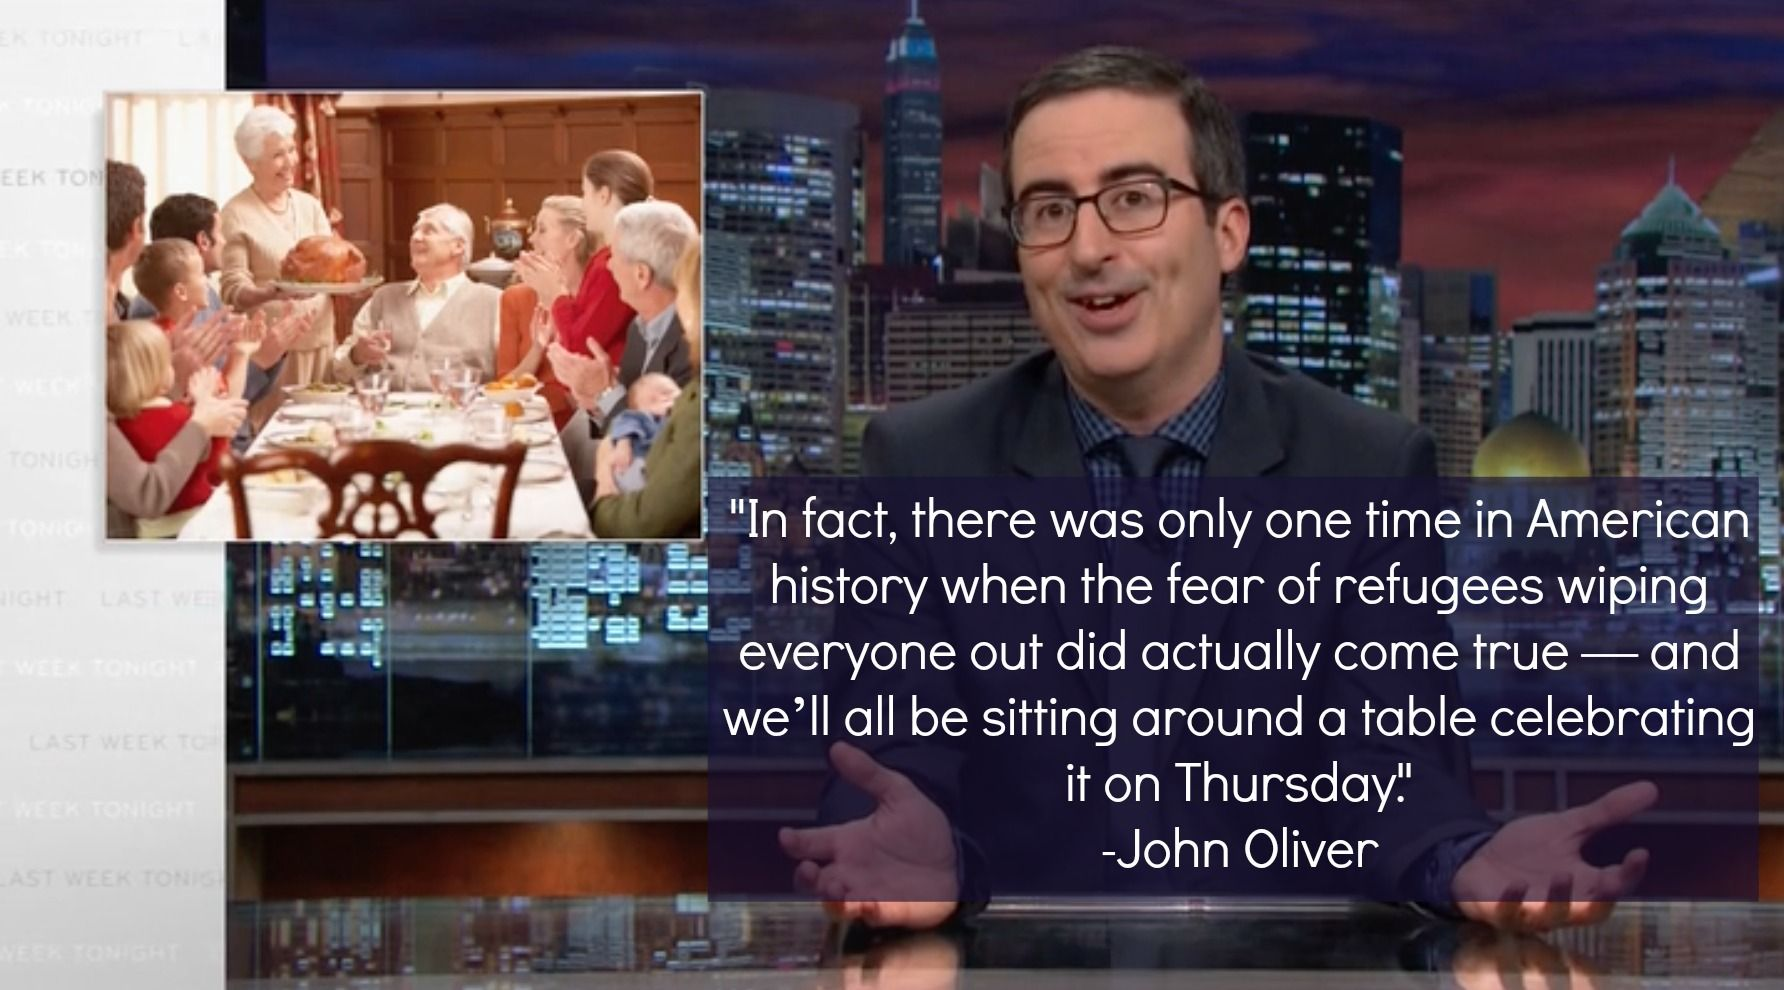 """…and we'll all be sitting around a table celebrating it on Thursday."" -John Oliver - More at: http://quotespictures.net/21778/and-well-all-be-sitting-around-a-table-celebrating-it-on-thursday-john-oliver"